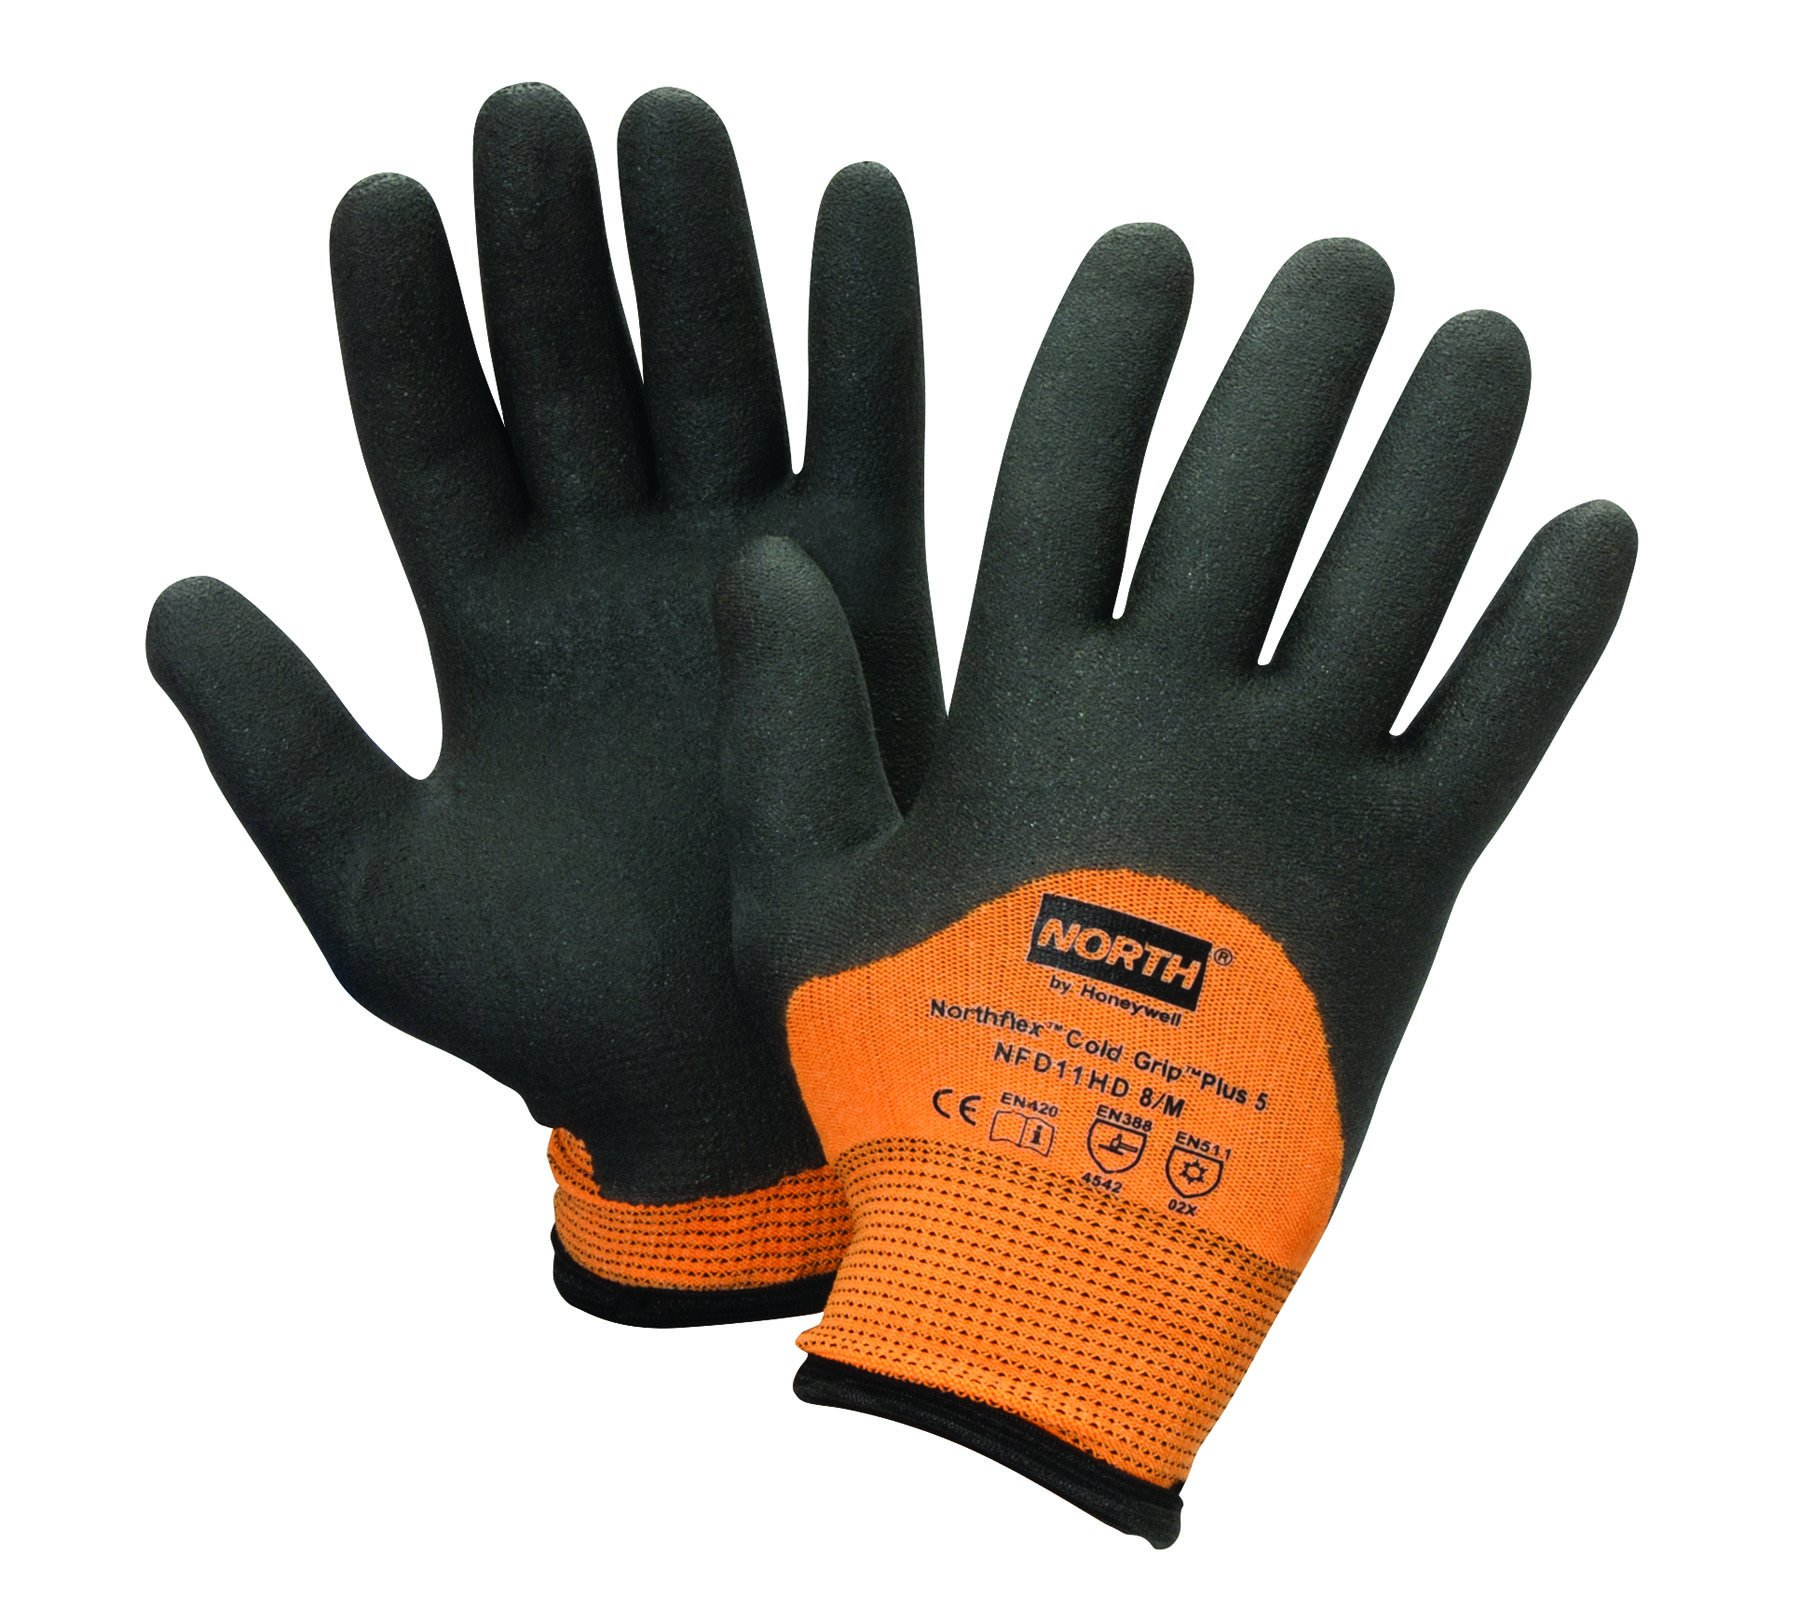 North by Honeywell NFD11HD/10XL Northflex Cold Grip Plus 5 Cut-Resistant PVC Palm-Coated Gloves, Size 10/X-Large